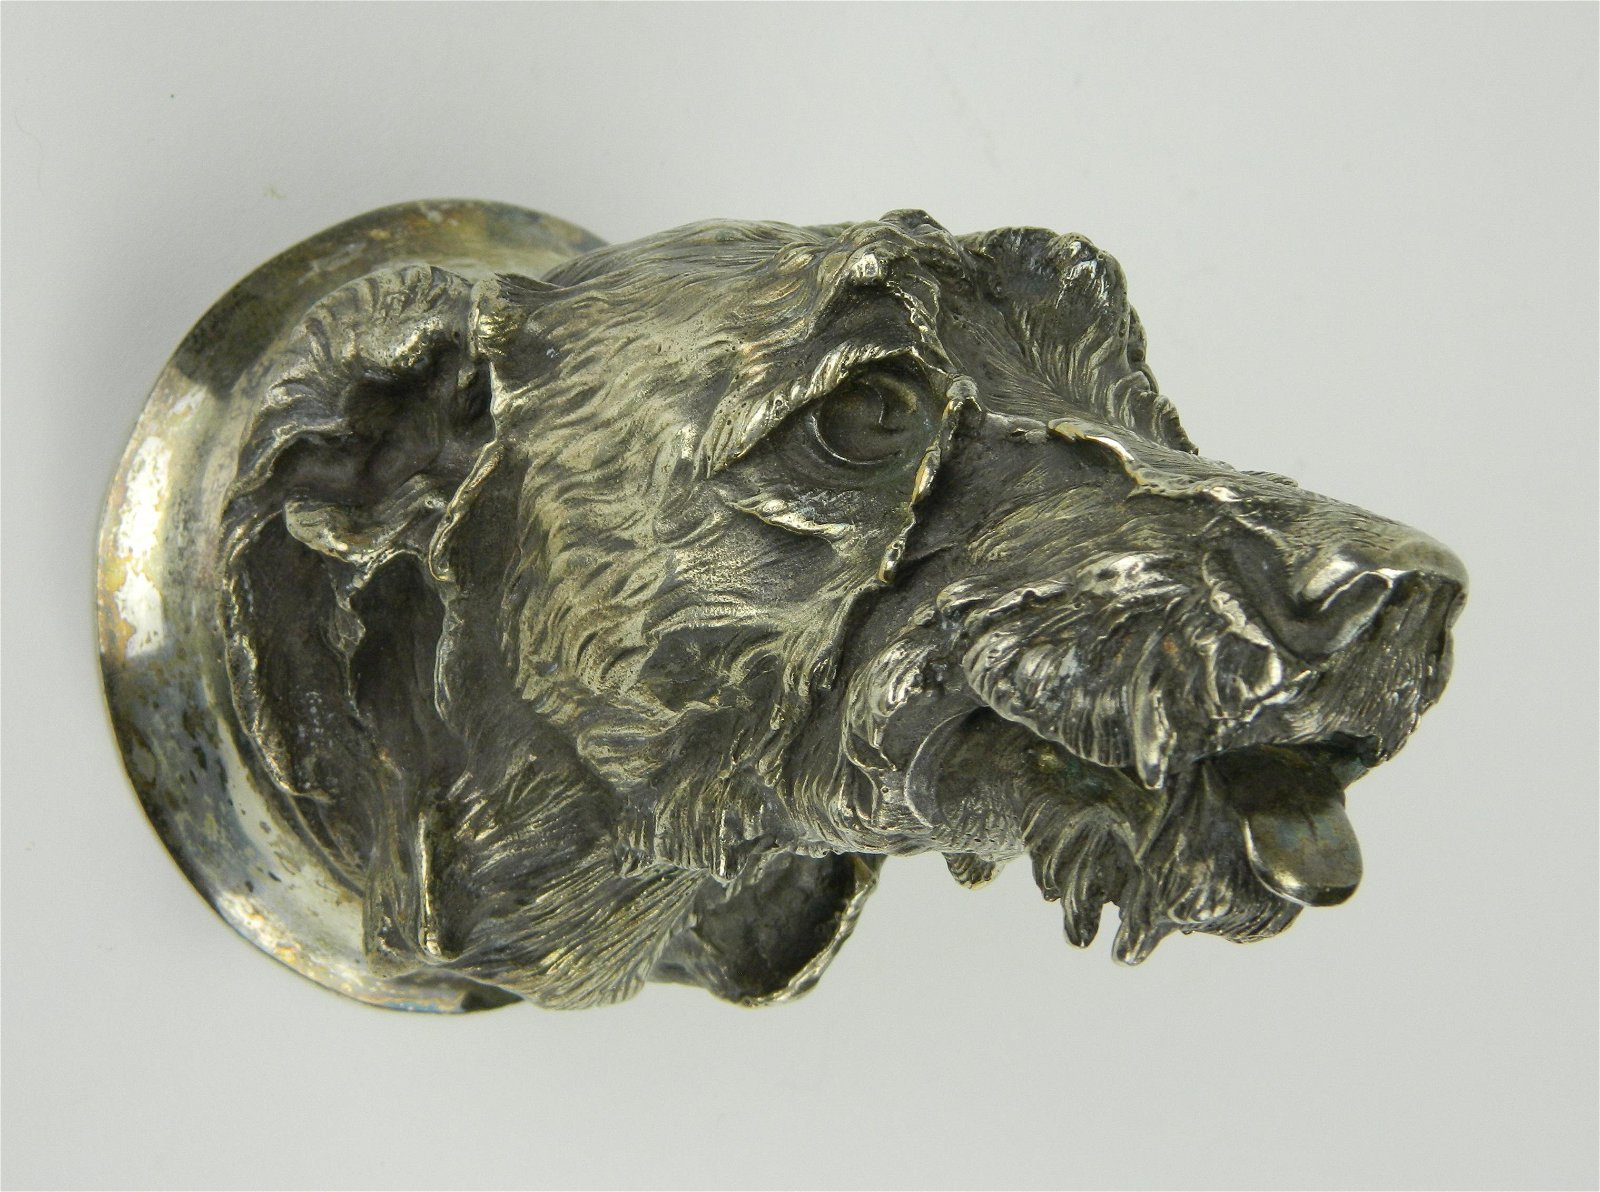 Silver over bronze sculpture of a dog's head